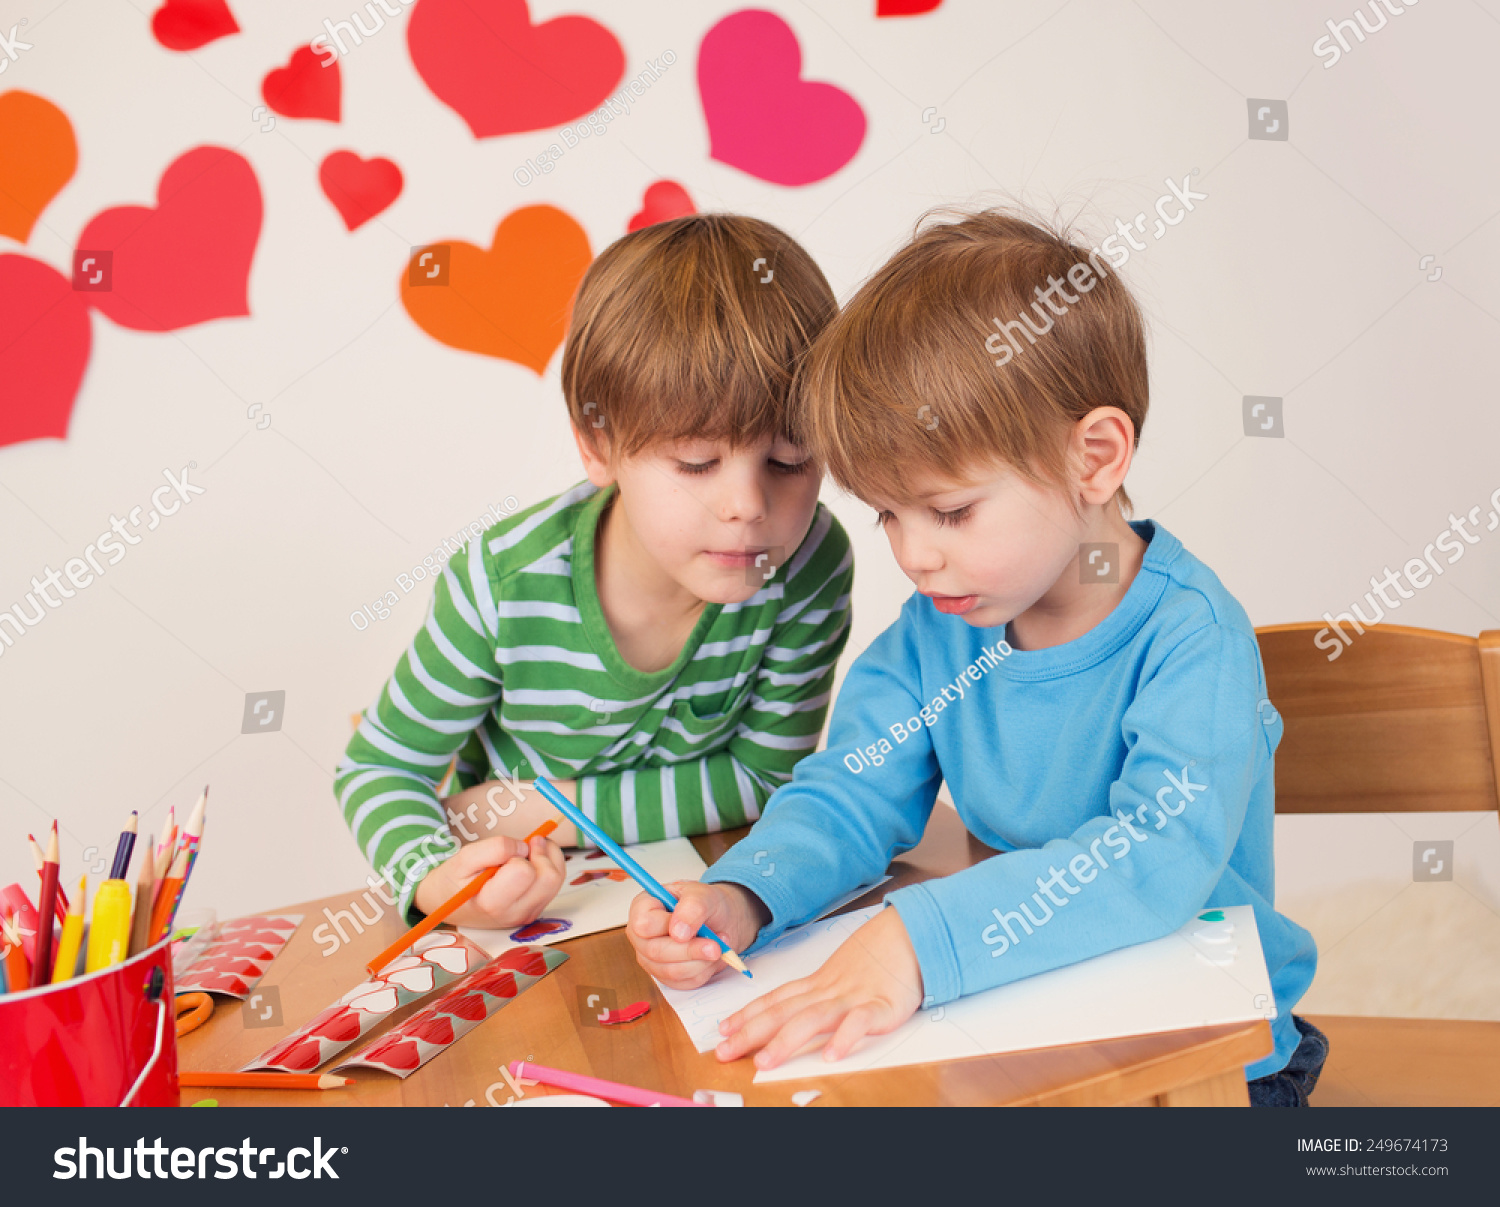 kids children doing valentines day arts and crafts with hearts pencils paper